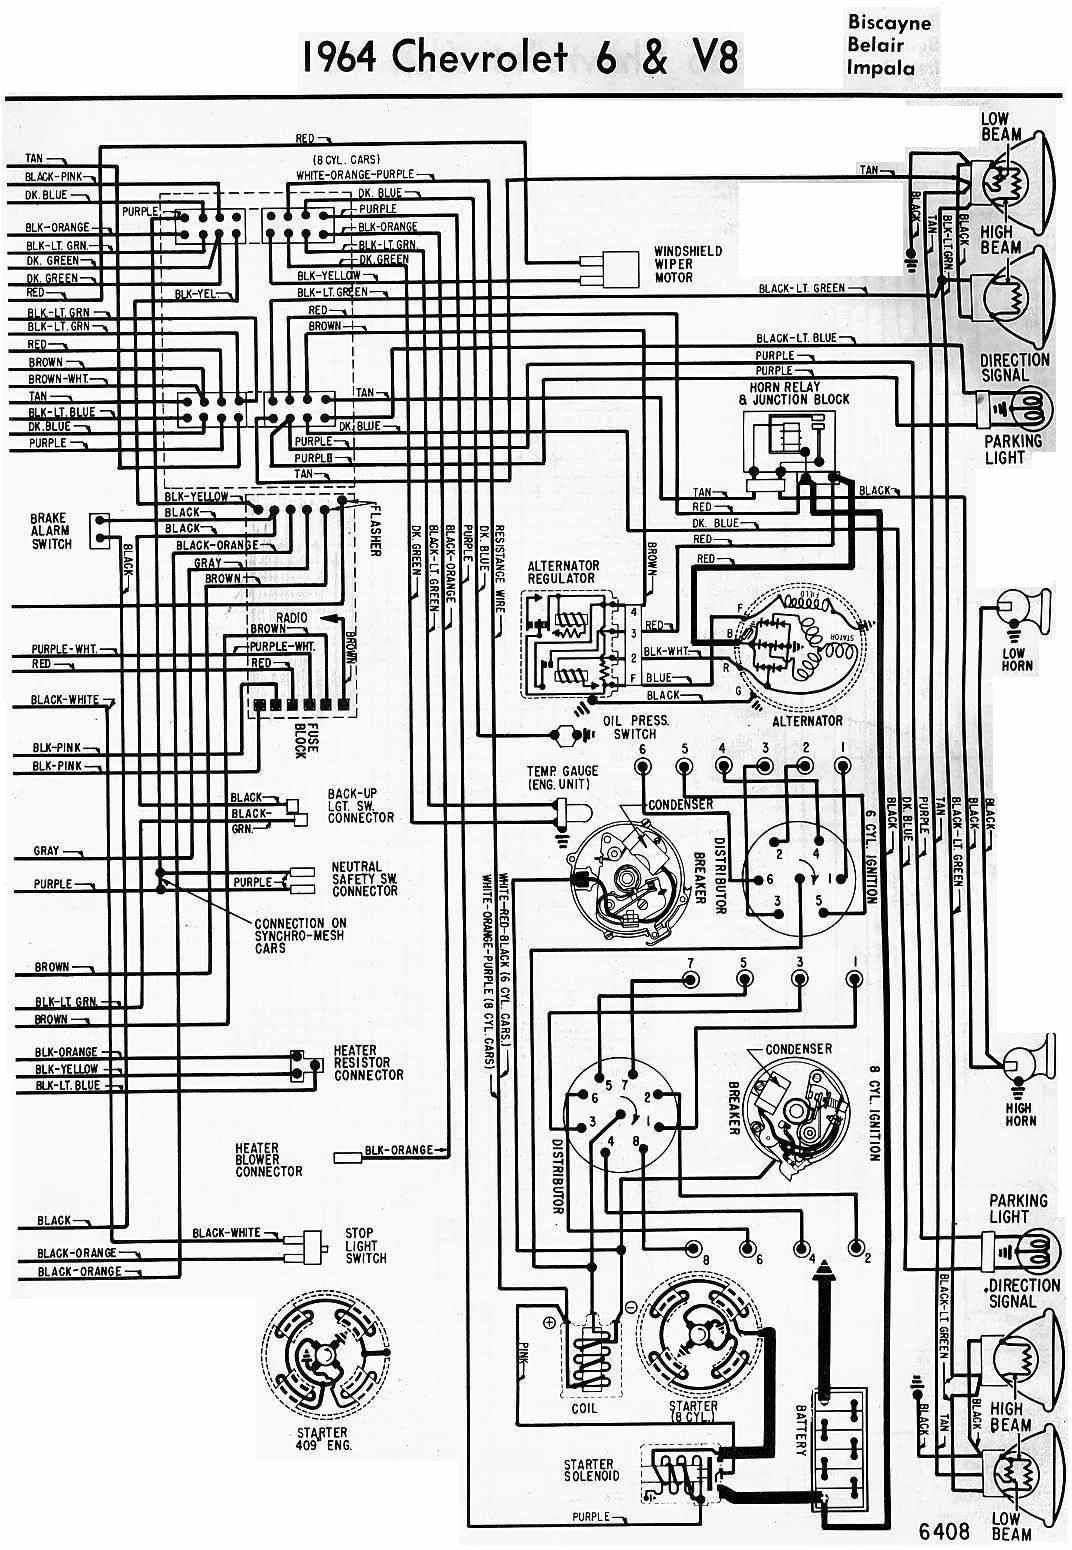 Diagram  2003 Impala Fuel Gauge Wiring Diagram Full